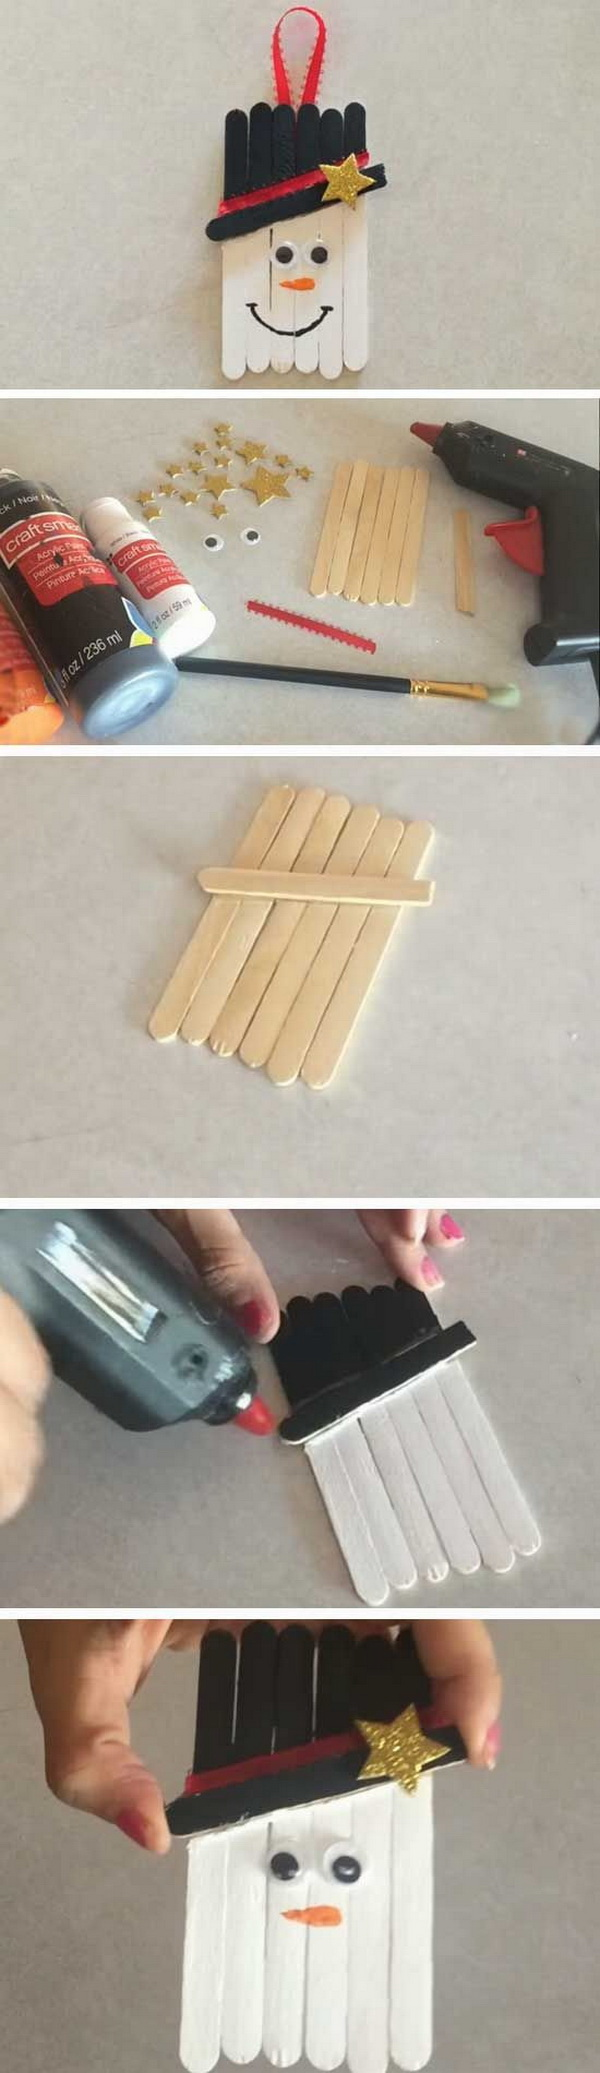 Popsicle Sticks Snowman. Turn the popsicle sticks laying around your craft room into these cute snowmen crafts! Easy and Fun DIY Christmas crafts for You and Your Kids to Have Fun.